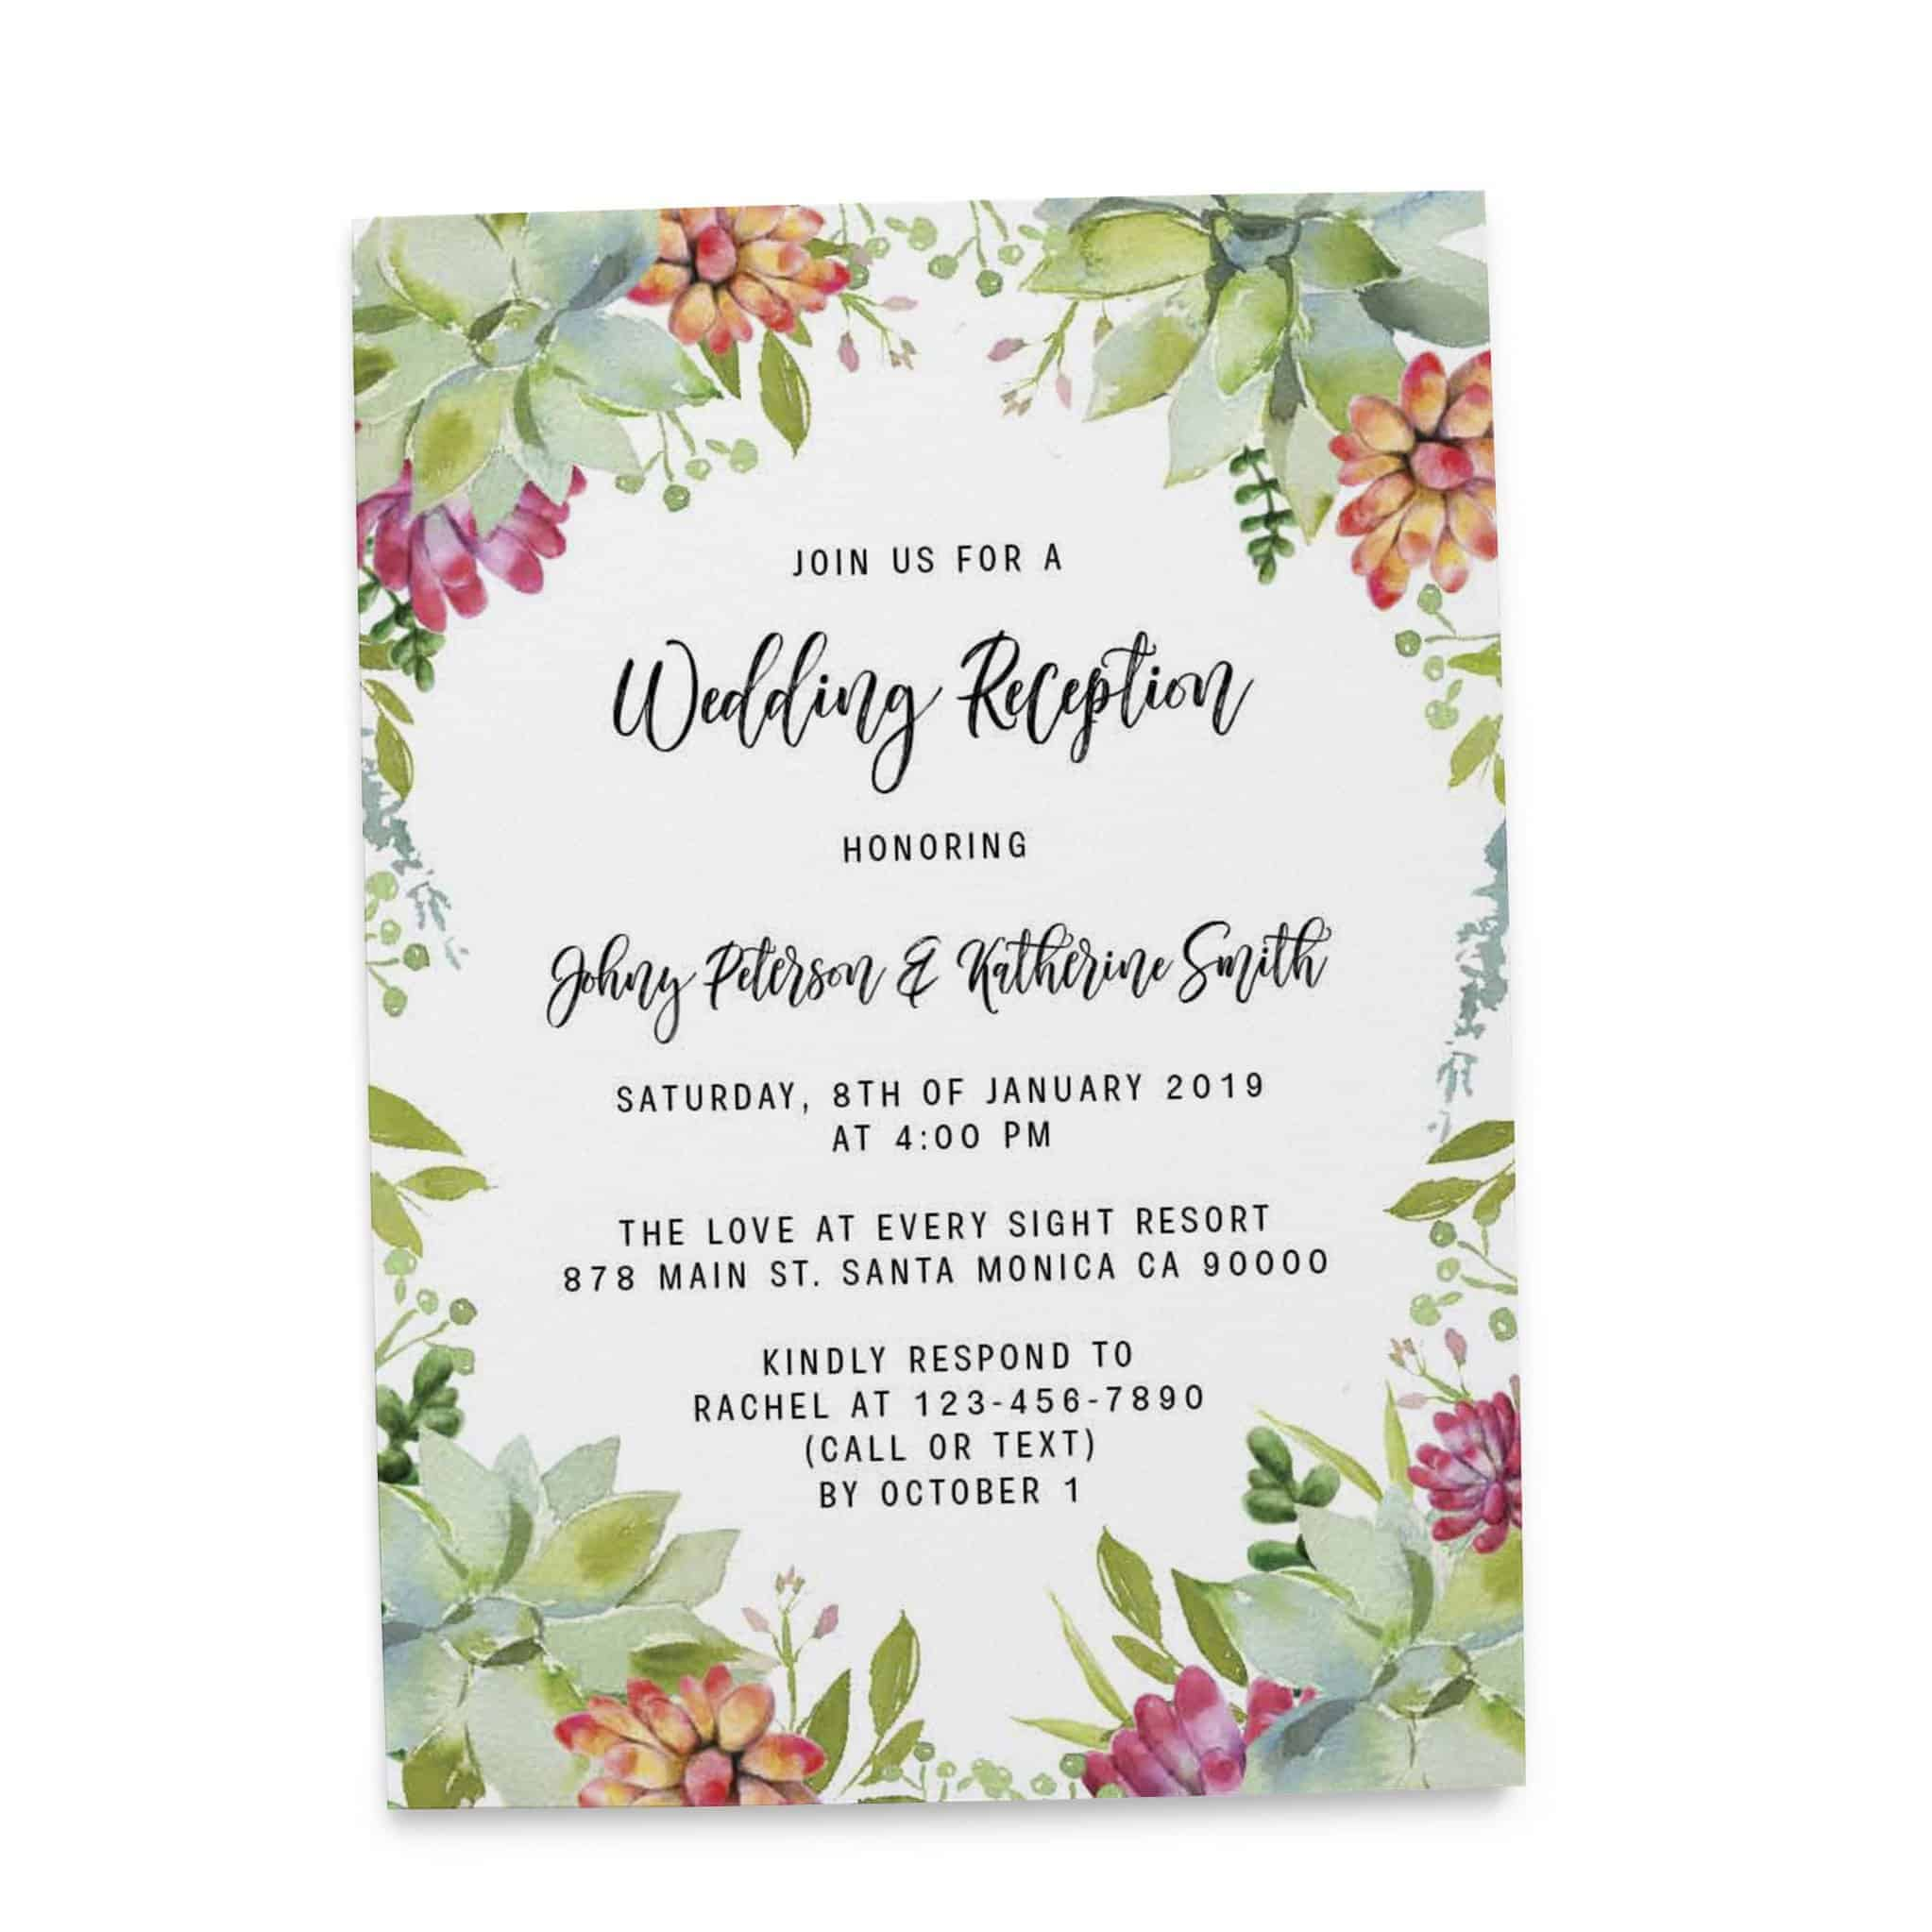 Wedding Invitation Cards Printed and Printable, Wedding Announcement Cards, Marriage Announcement Cards - Nice Floral Design